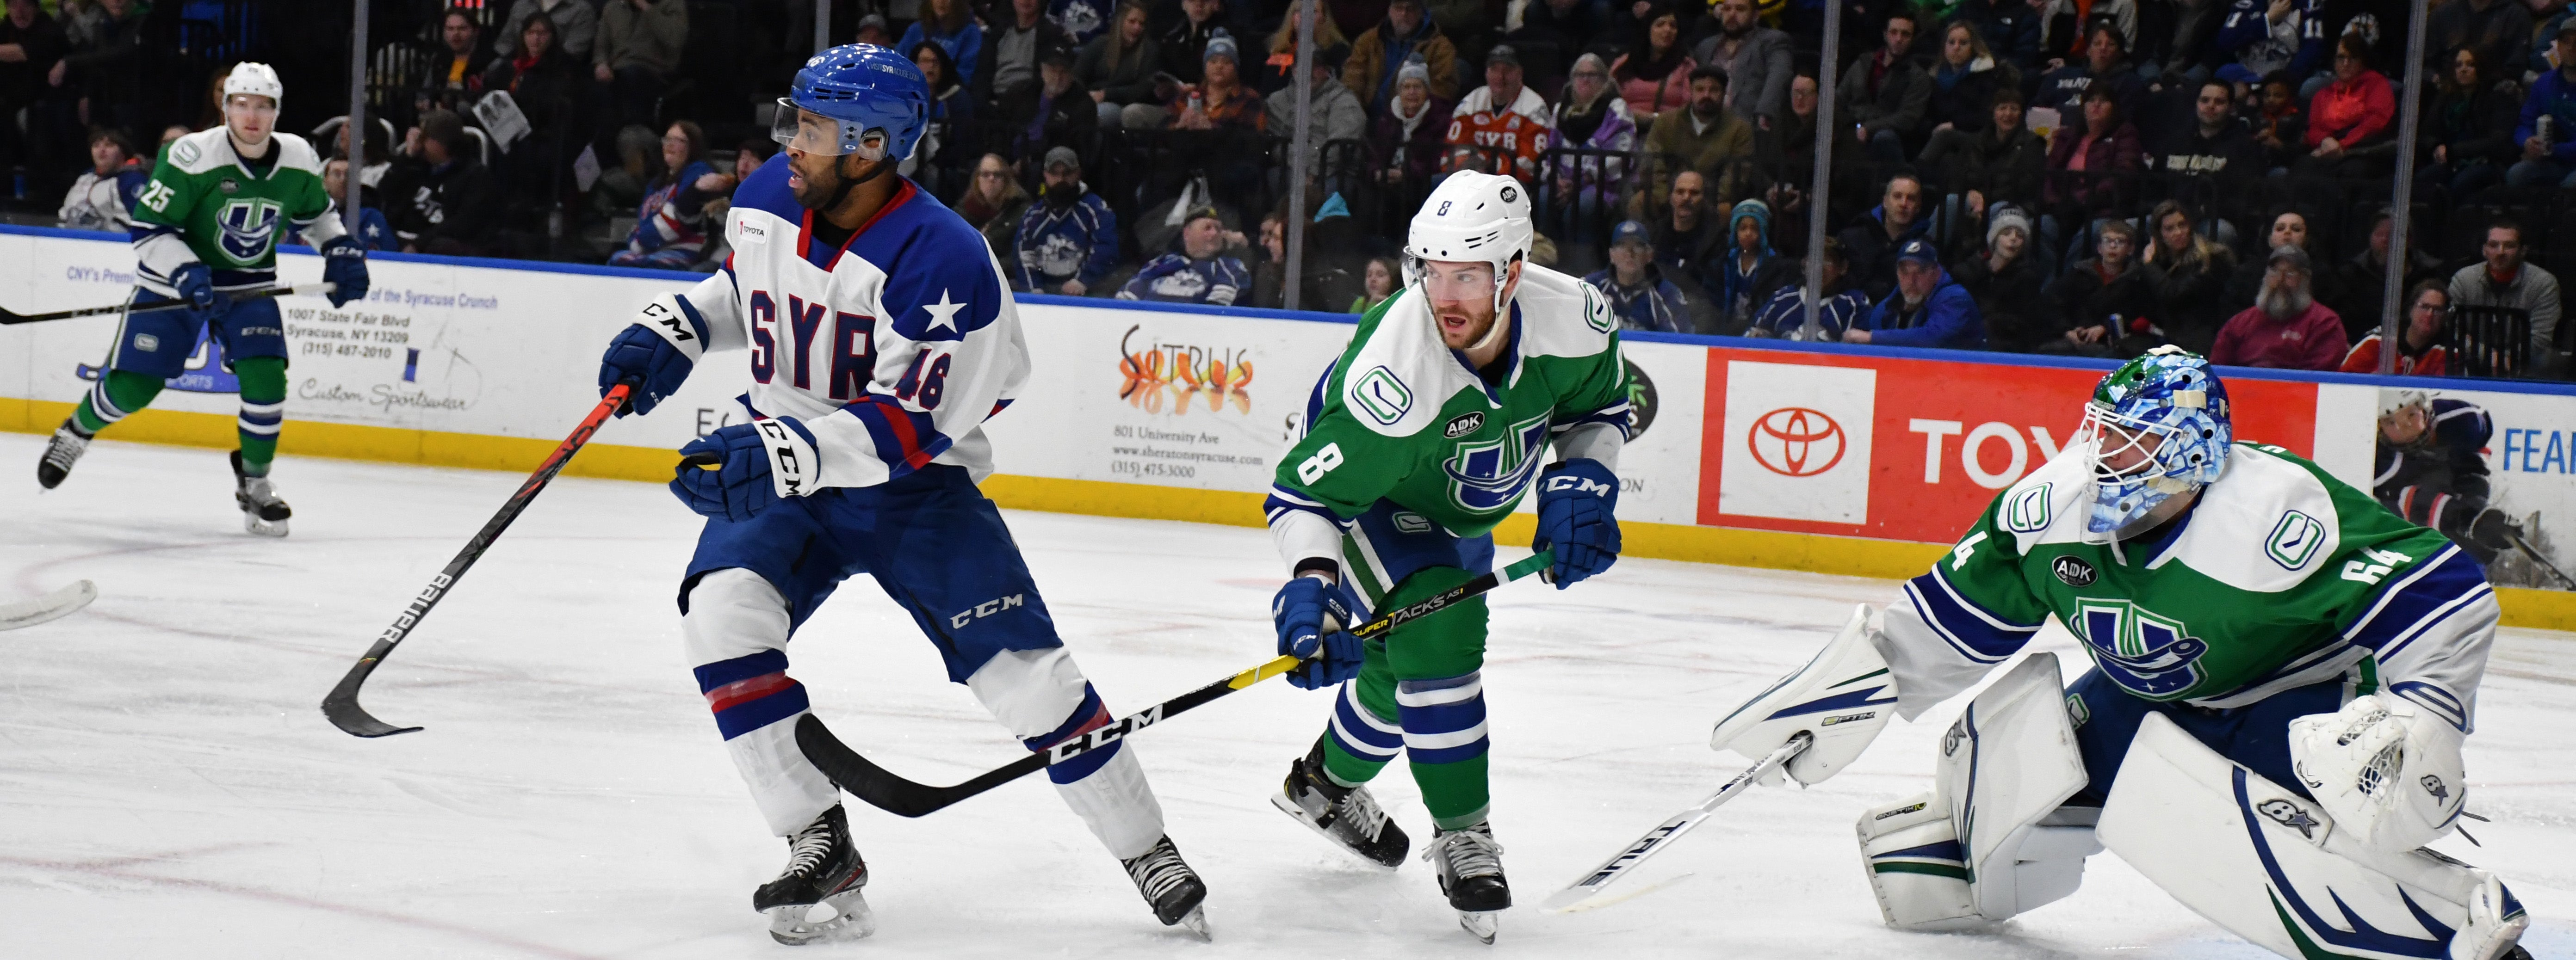 COMETS COMEBACK ATTEMPT STALLED IN SYRACUSE